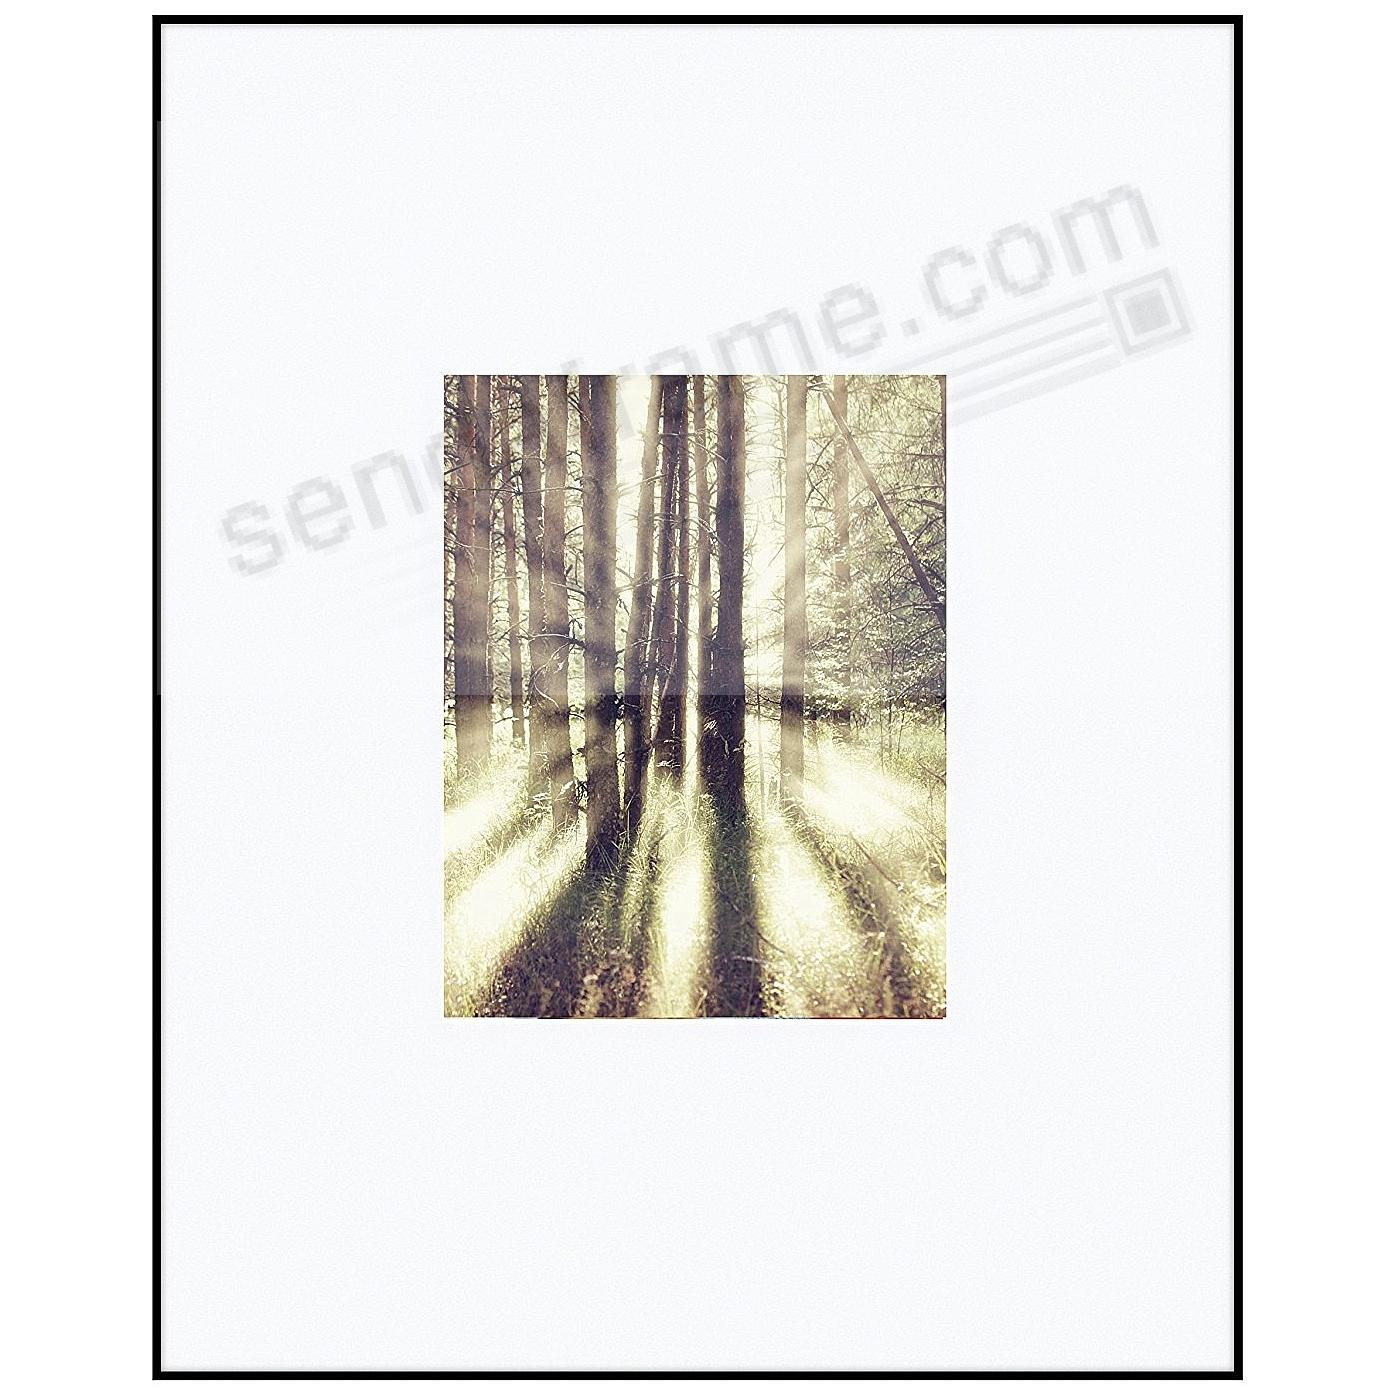 PHOTOGRAPHY metallic frame Matte-Black/White matted 16x20/8x10 by ARTCARE®